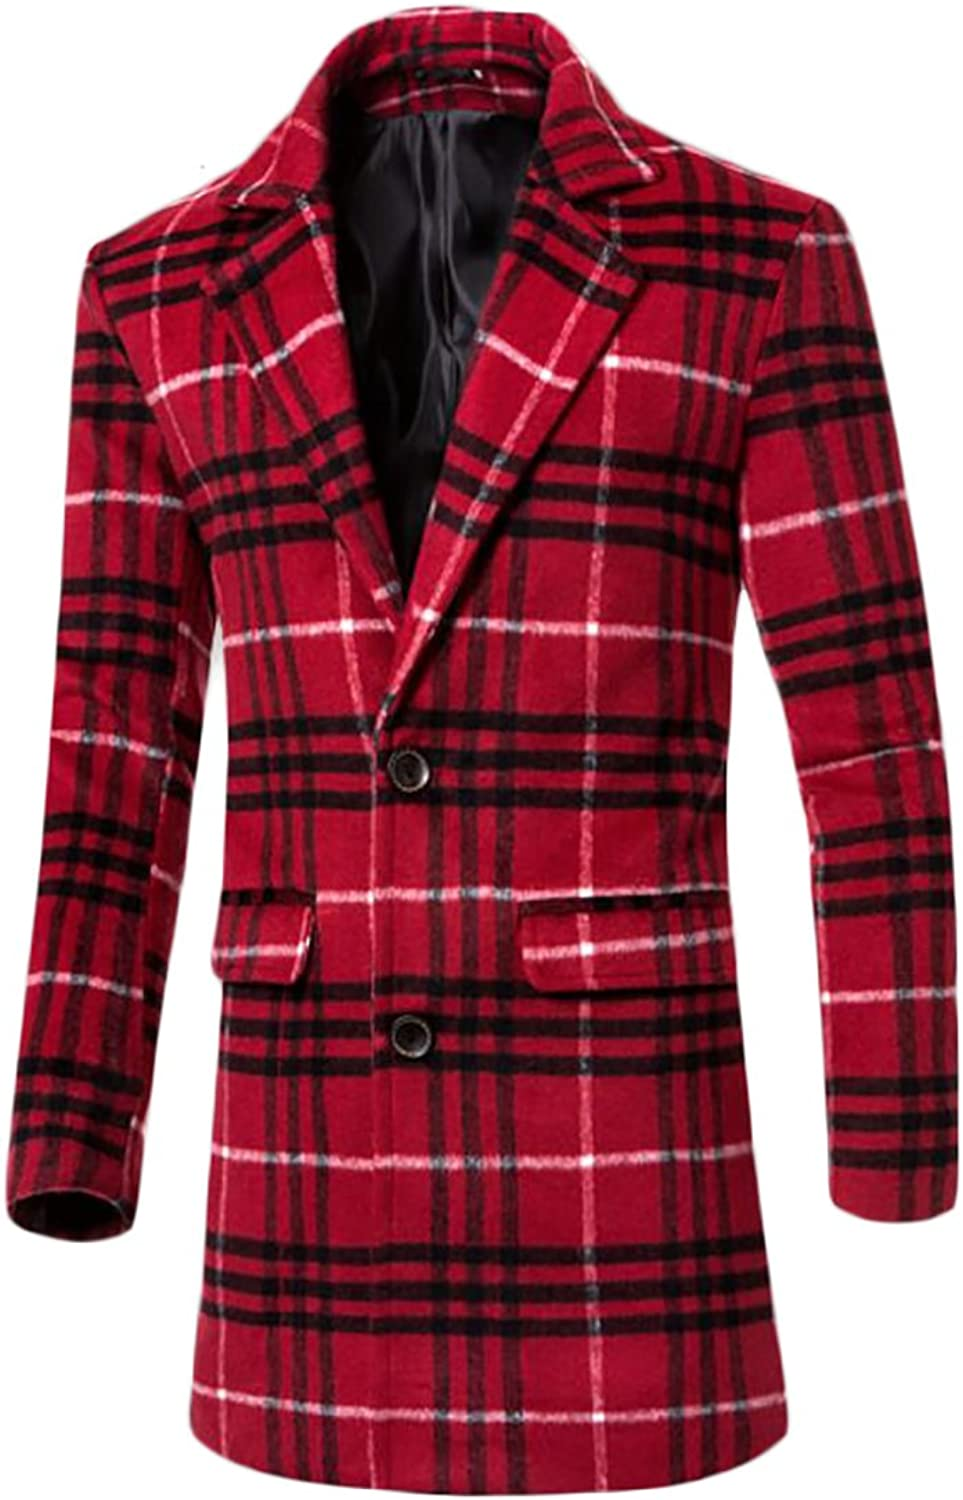 Yayu Mens Plaid Single Breasted Wool-Blend Lapel Peacoat Overcoat